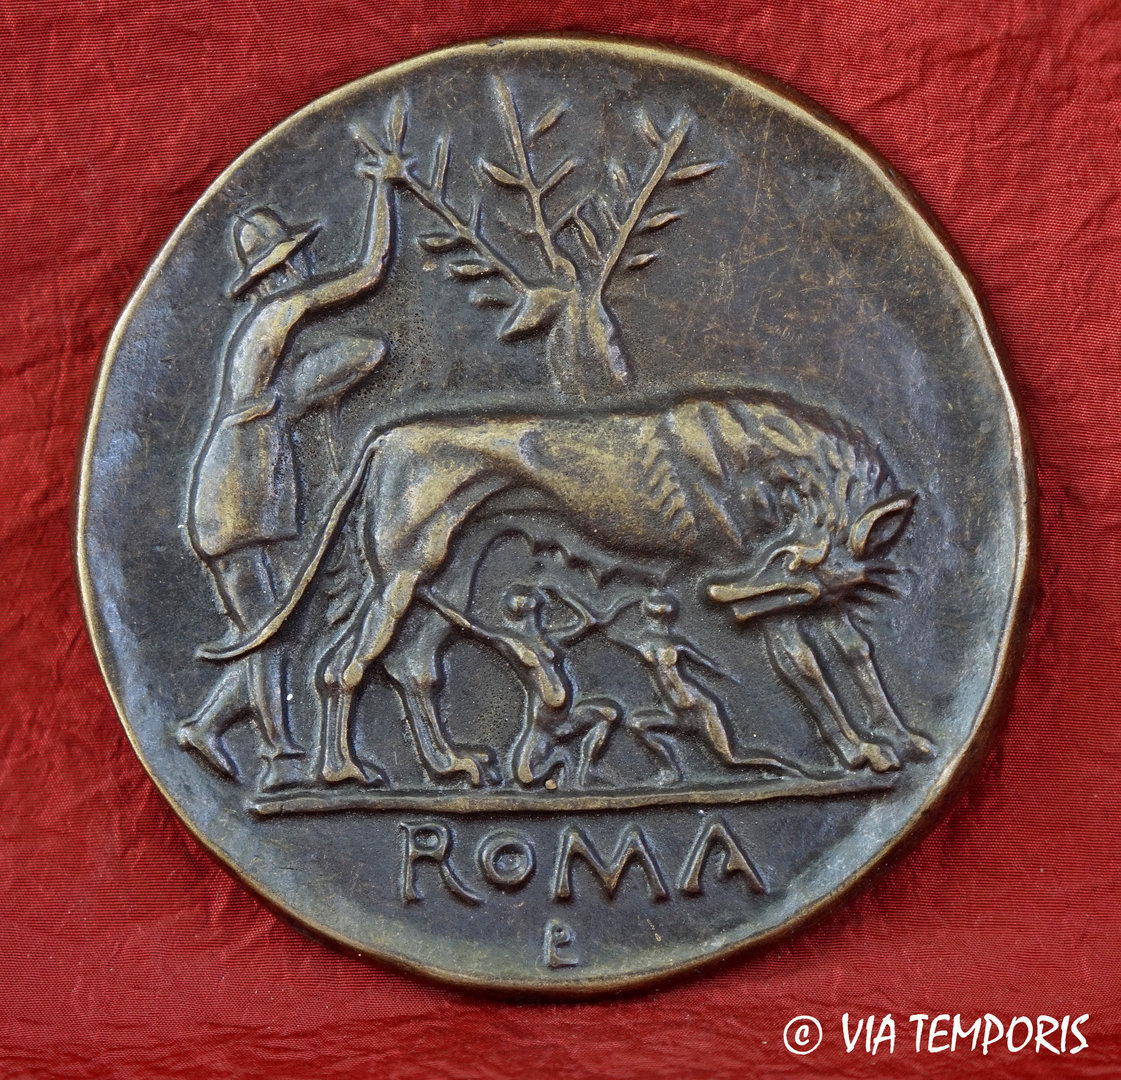 GREAT MEDAL DEPICTING REMUS AND ROMULUS WITH THE SHE WOLF